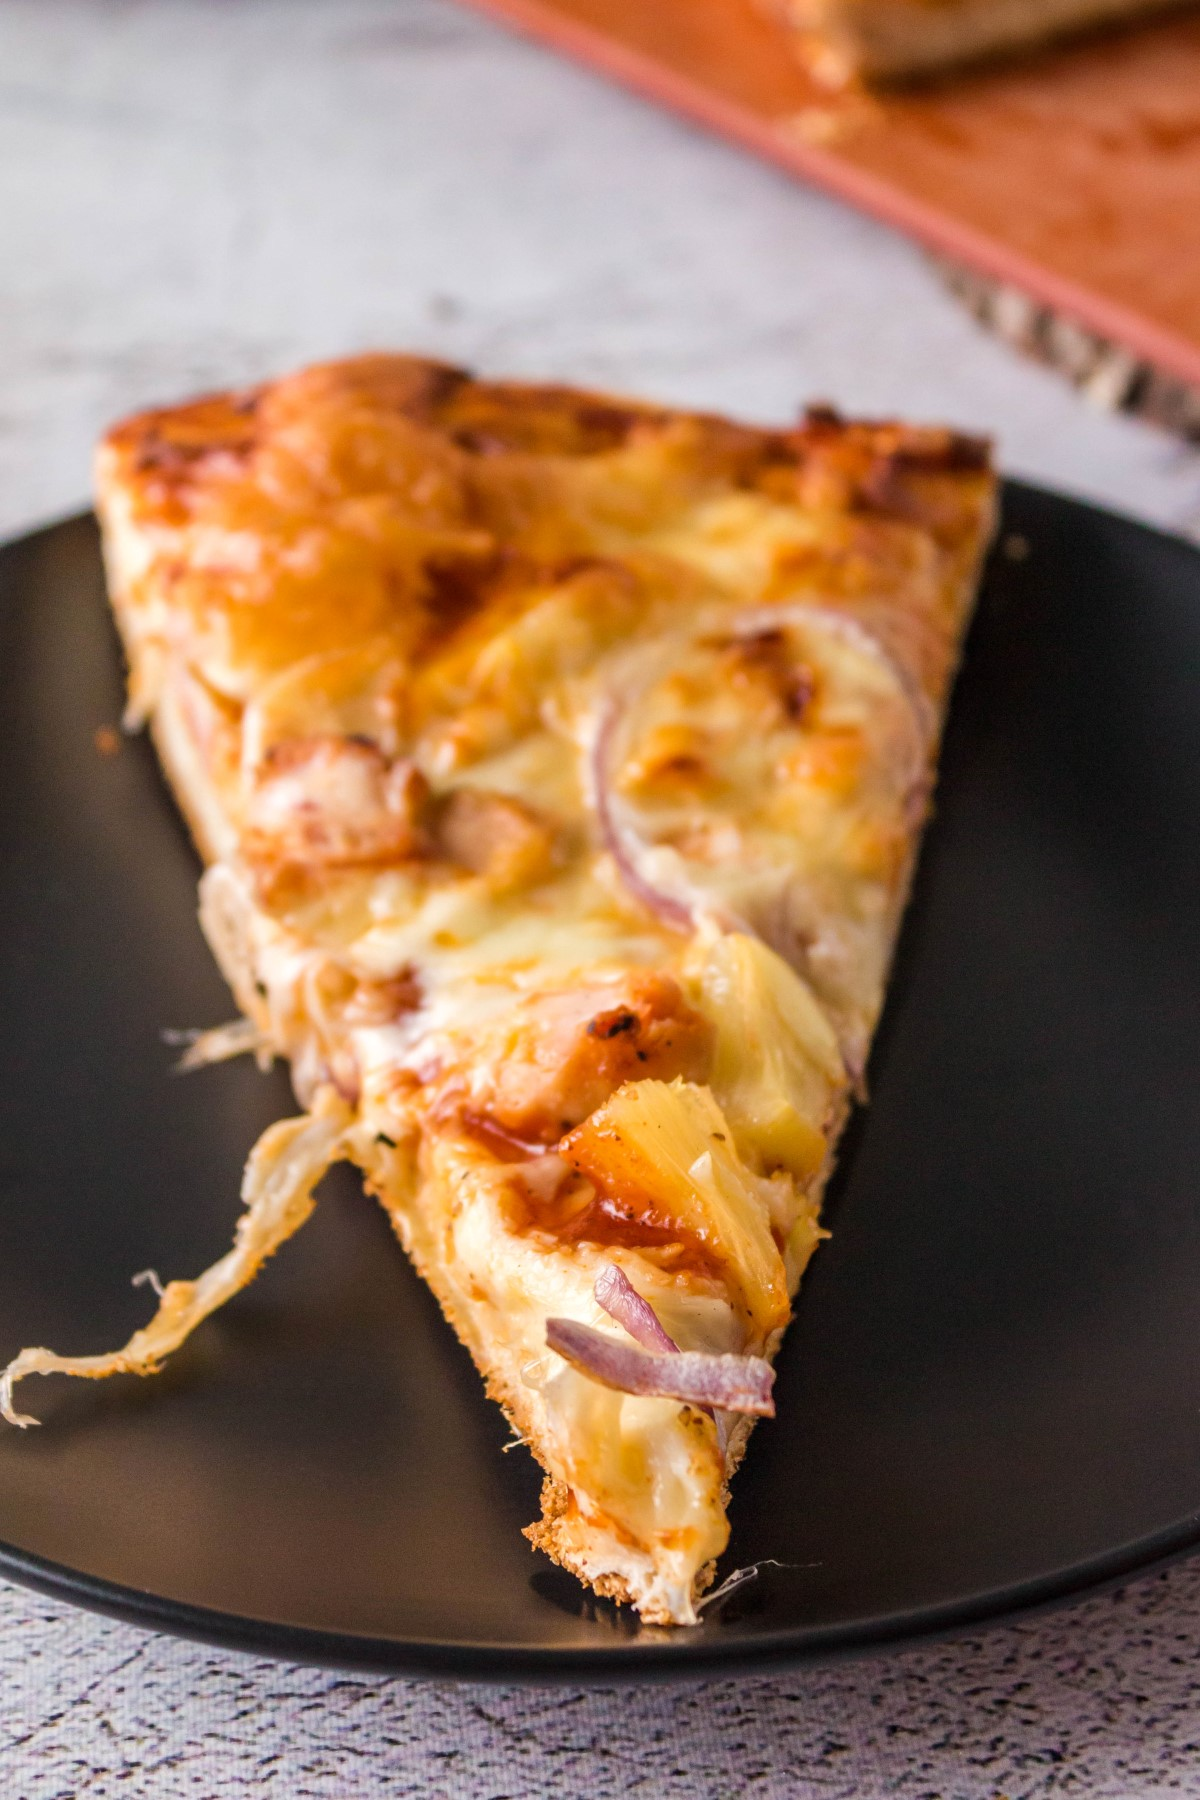 Slice of BBQ chicken pizza on a black plate